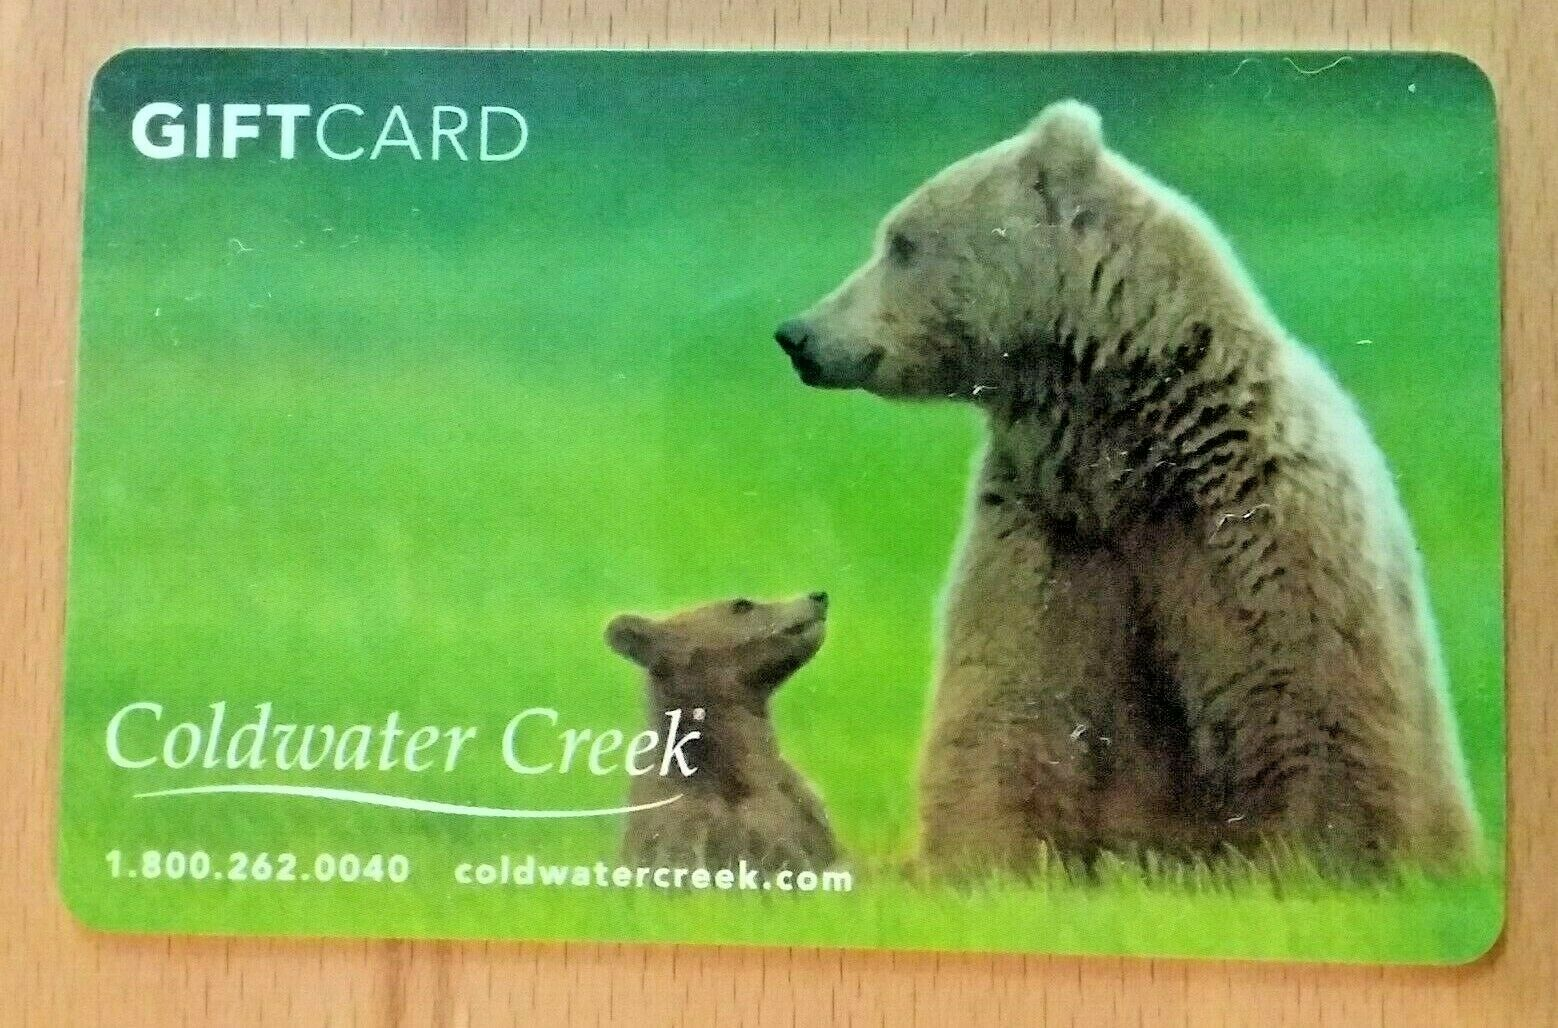 COLDWATER CREEK TWO BEARS Mama Bear And Cub Gift Card No Value - $1.99